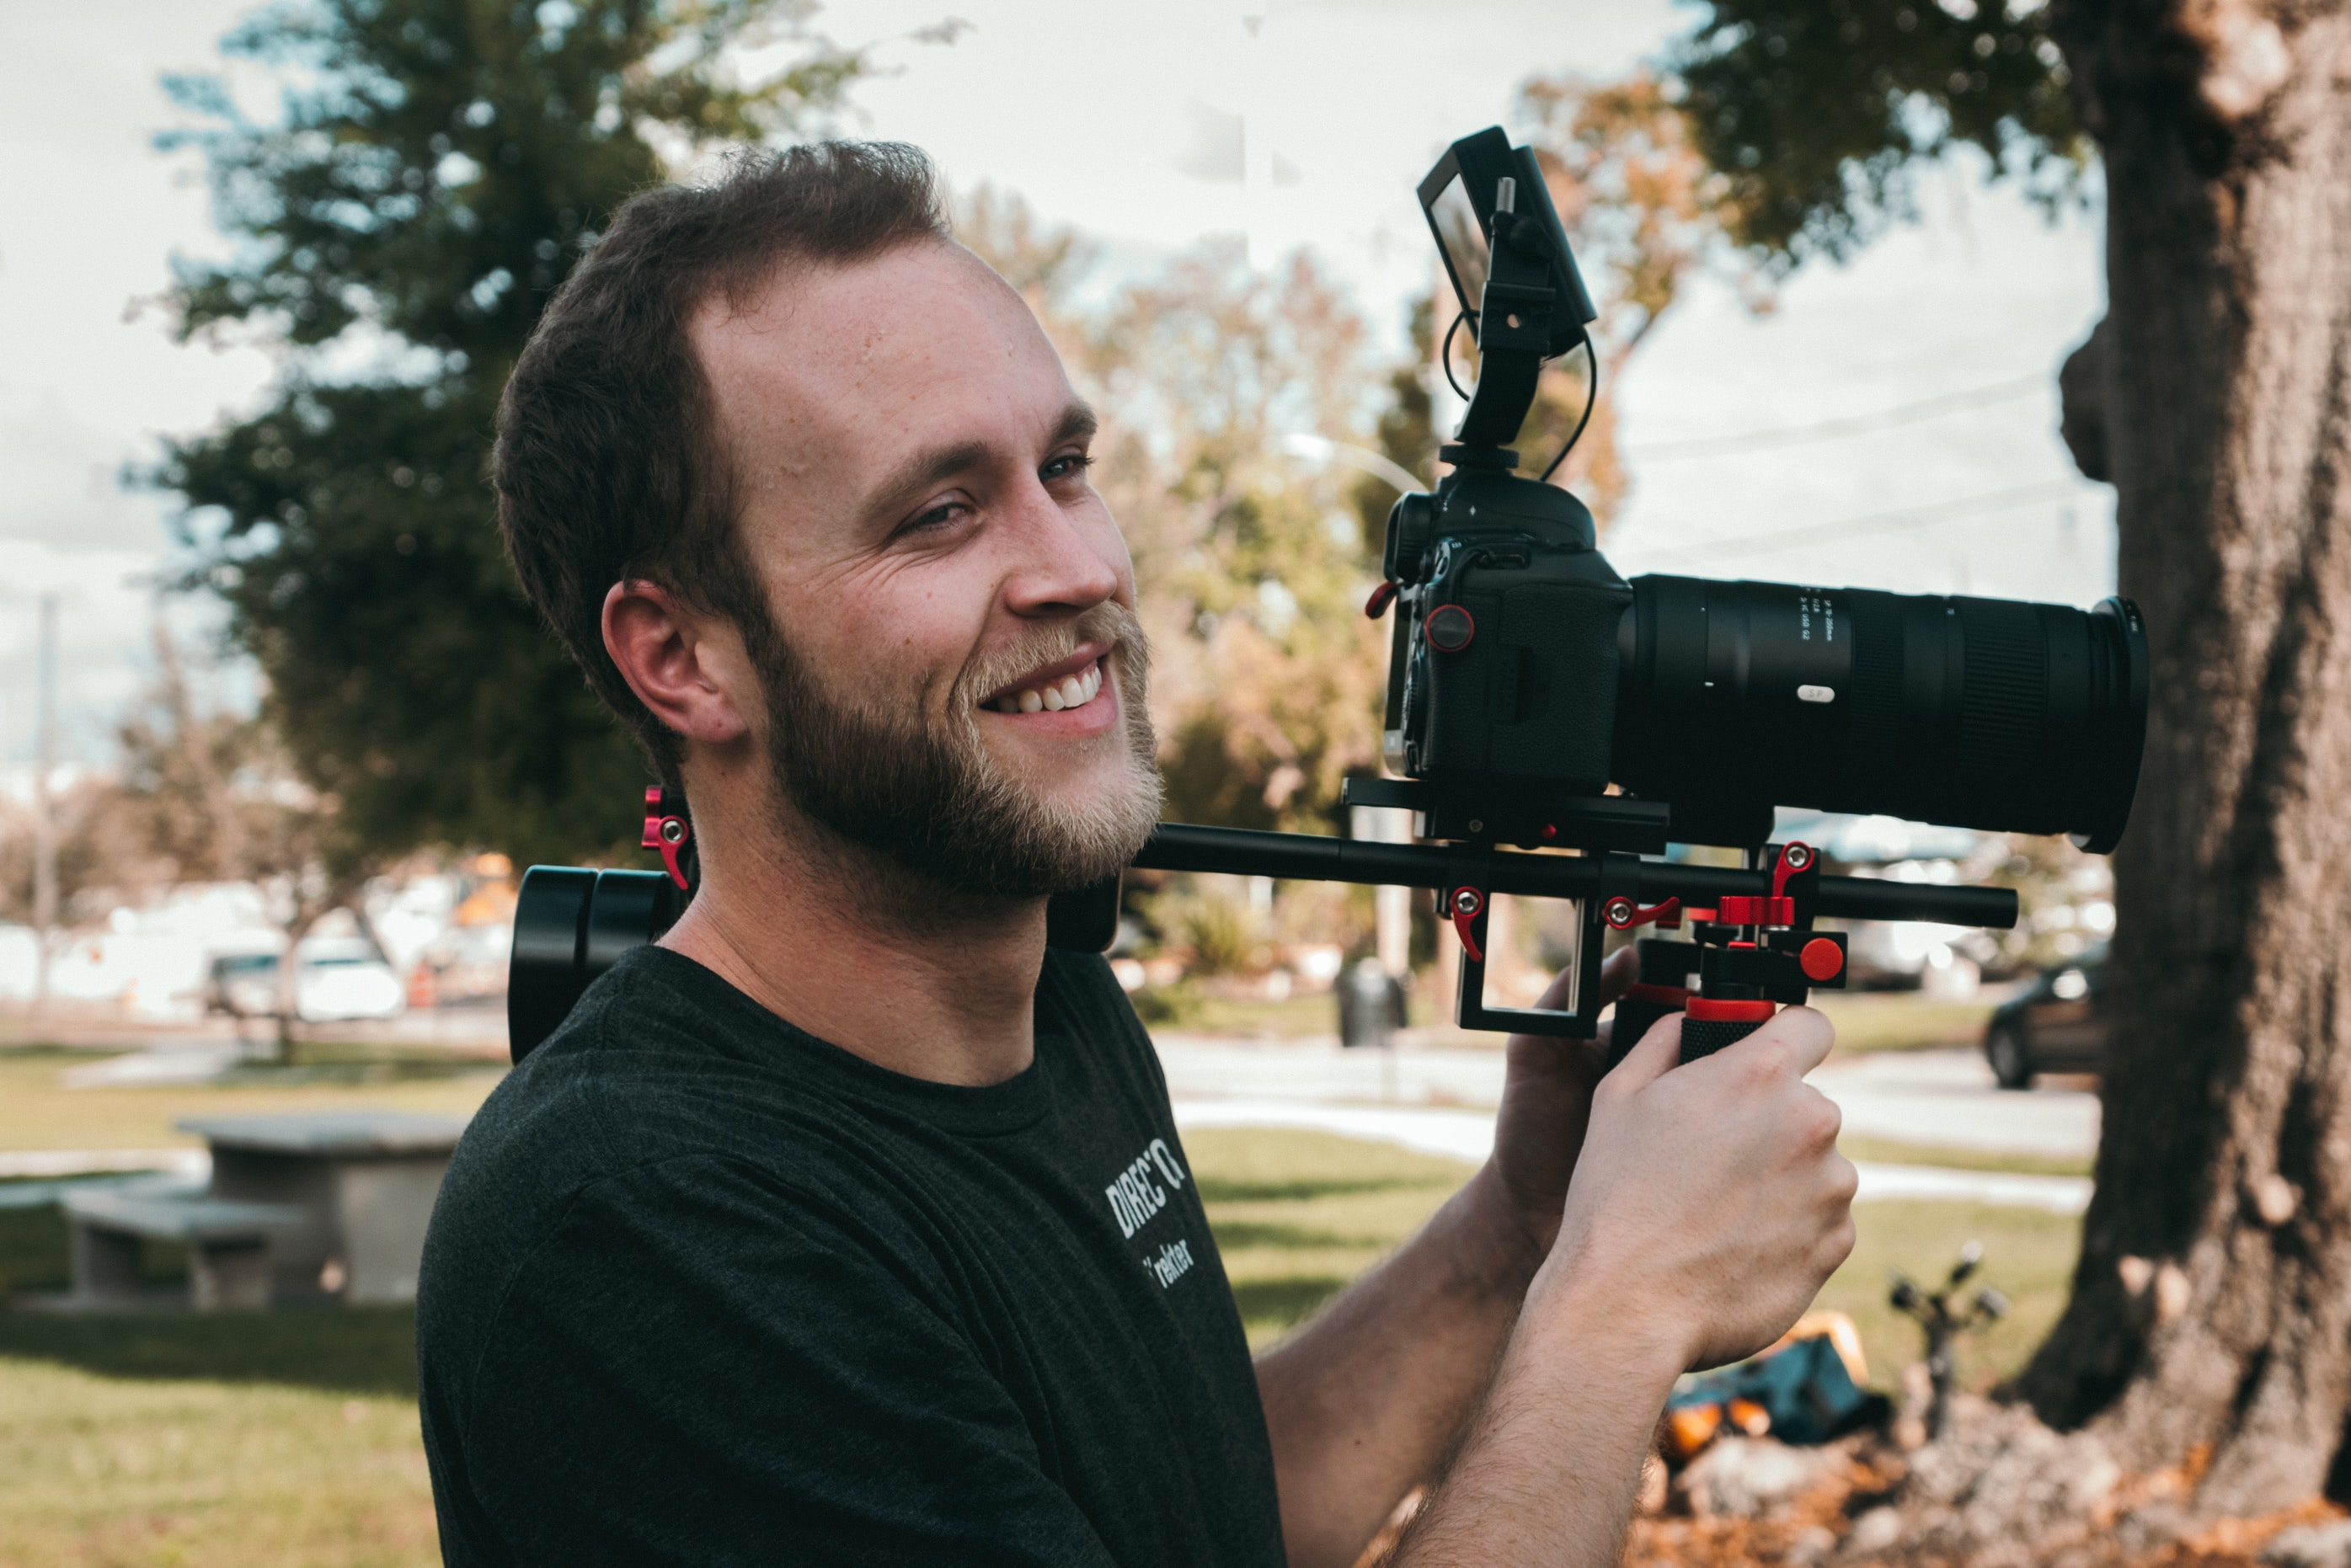 man smiling standing near the DSLR camera